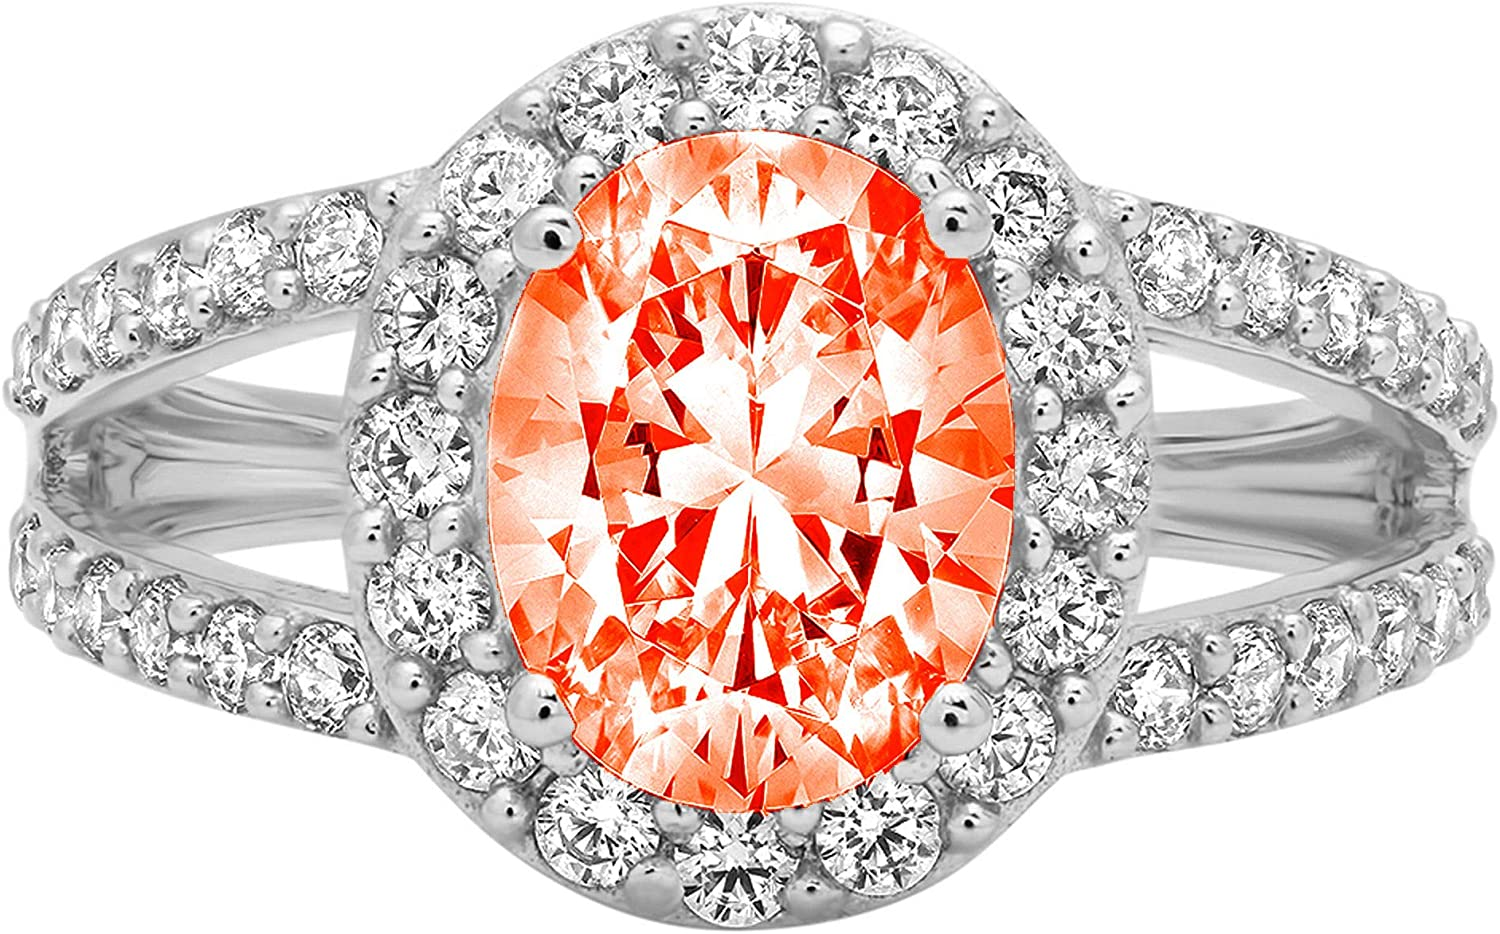 2.24 ct Oval Cut Solitaire Accent Halo split shank Genuine Flawless Red Simulated Diamond Gemstone Engagement Promise Statement Anniversary Bridal Wedding Ring Solid 18K White Gold